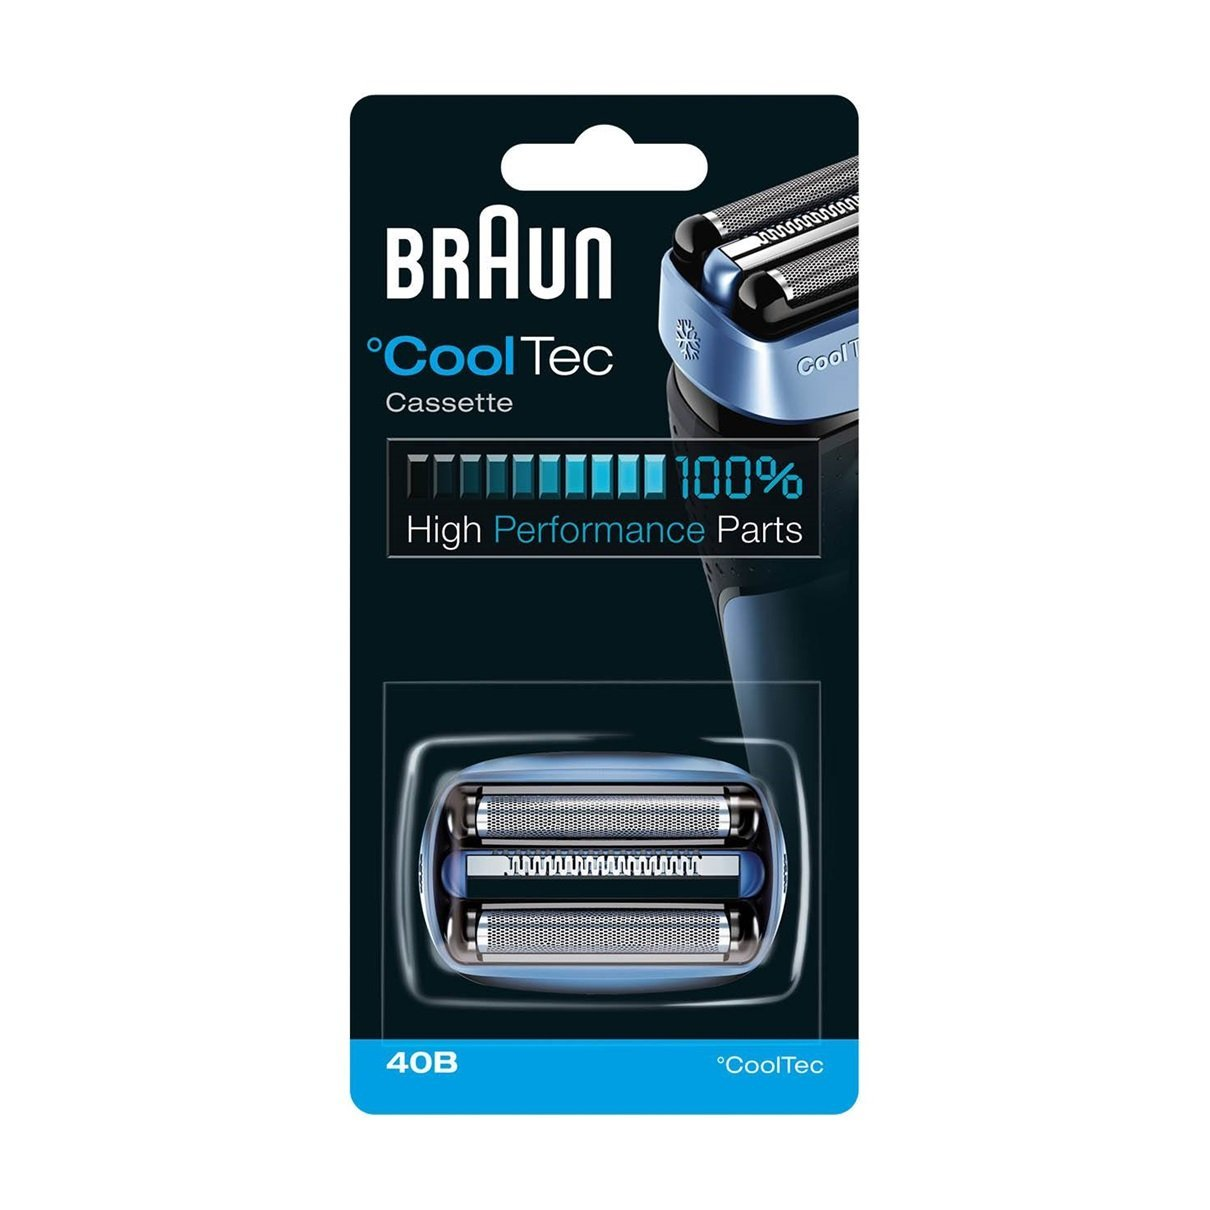 Braun CoolTec 40B Foil & Cutter Replacement Head, Compatible with CoolTec Shaver